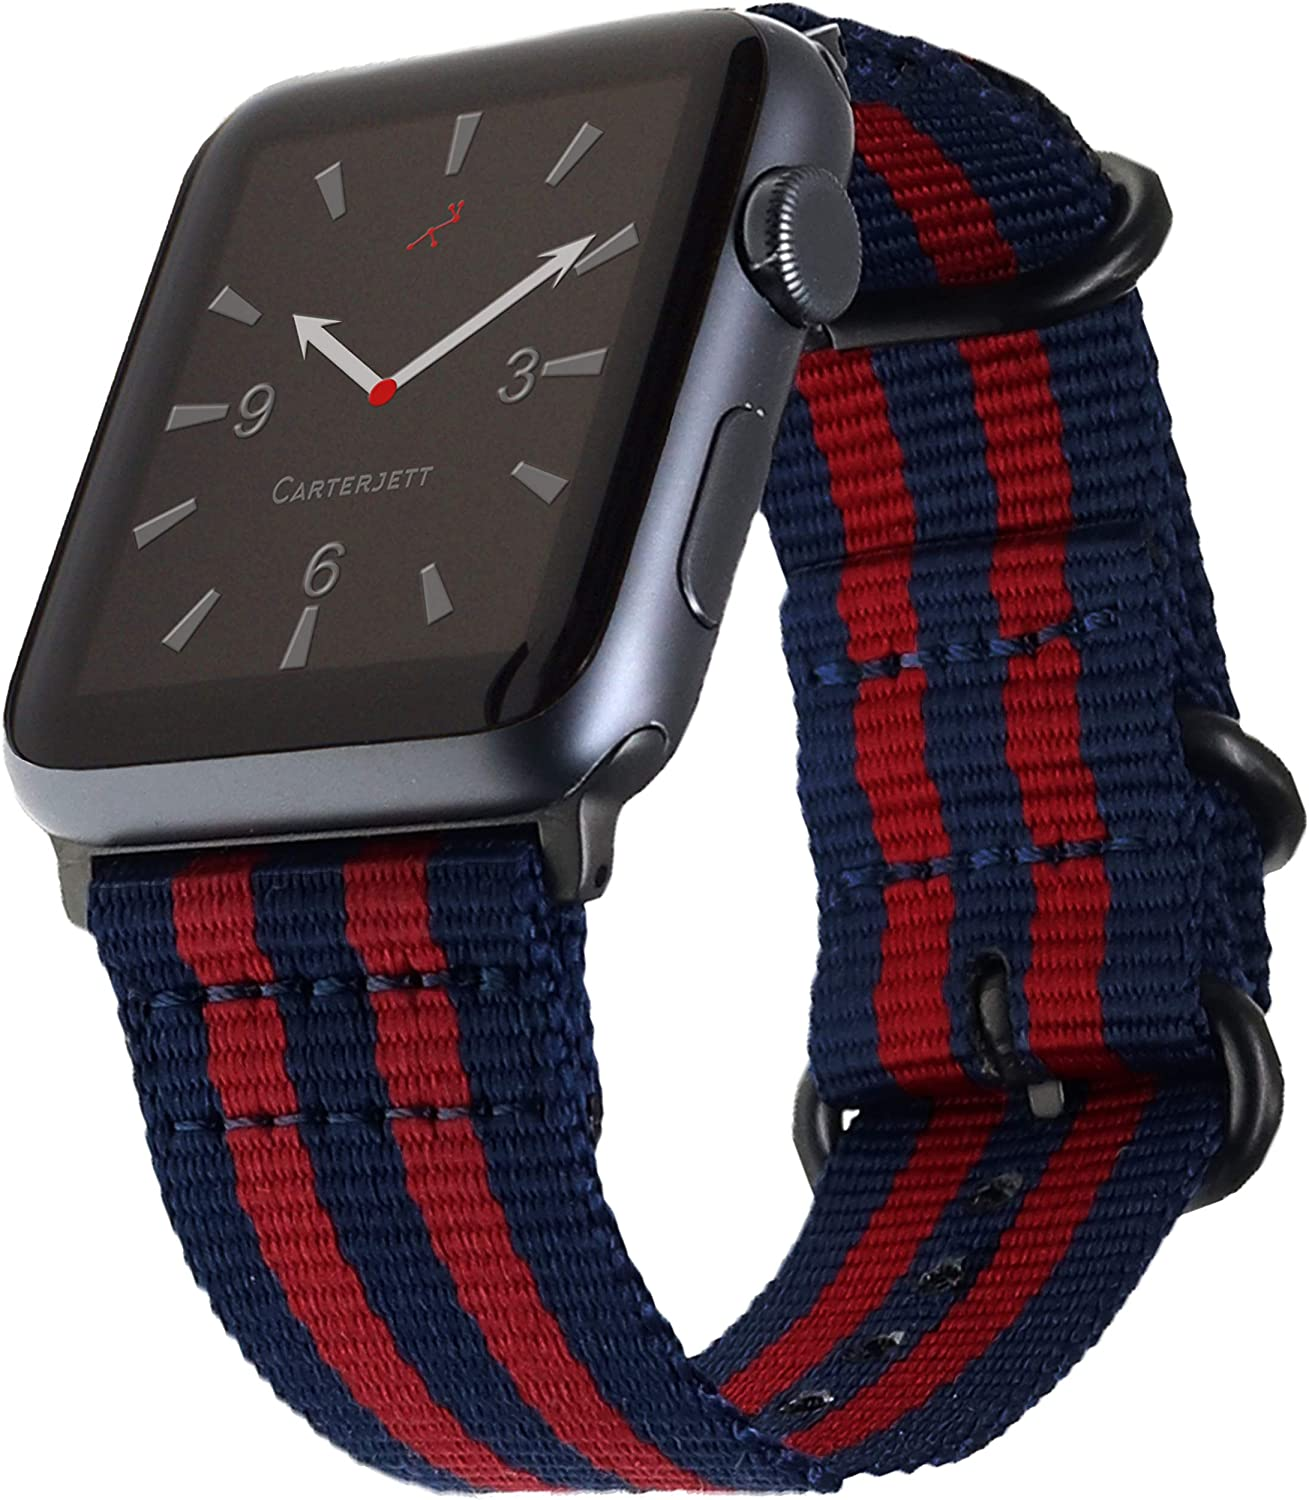 Carterjett Compatible with Apple Watch Band 42mm 44mm Nylon Sport iWatch Bands Navy Blue & Red Replacement Woven Strap Rugged Military Loop Buckle for Series 5 4 3 2 1 (42 44 S/M/L Sailor Stripe)